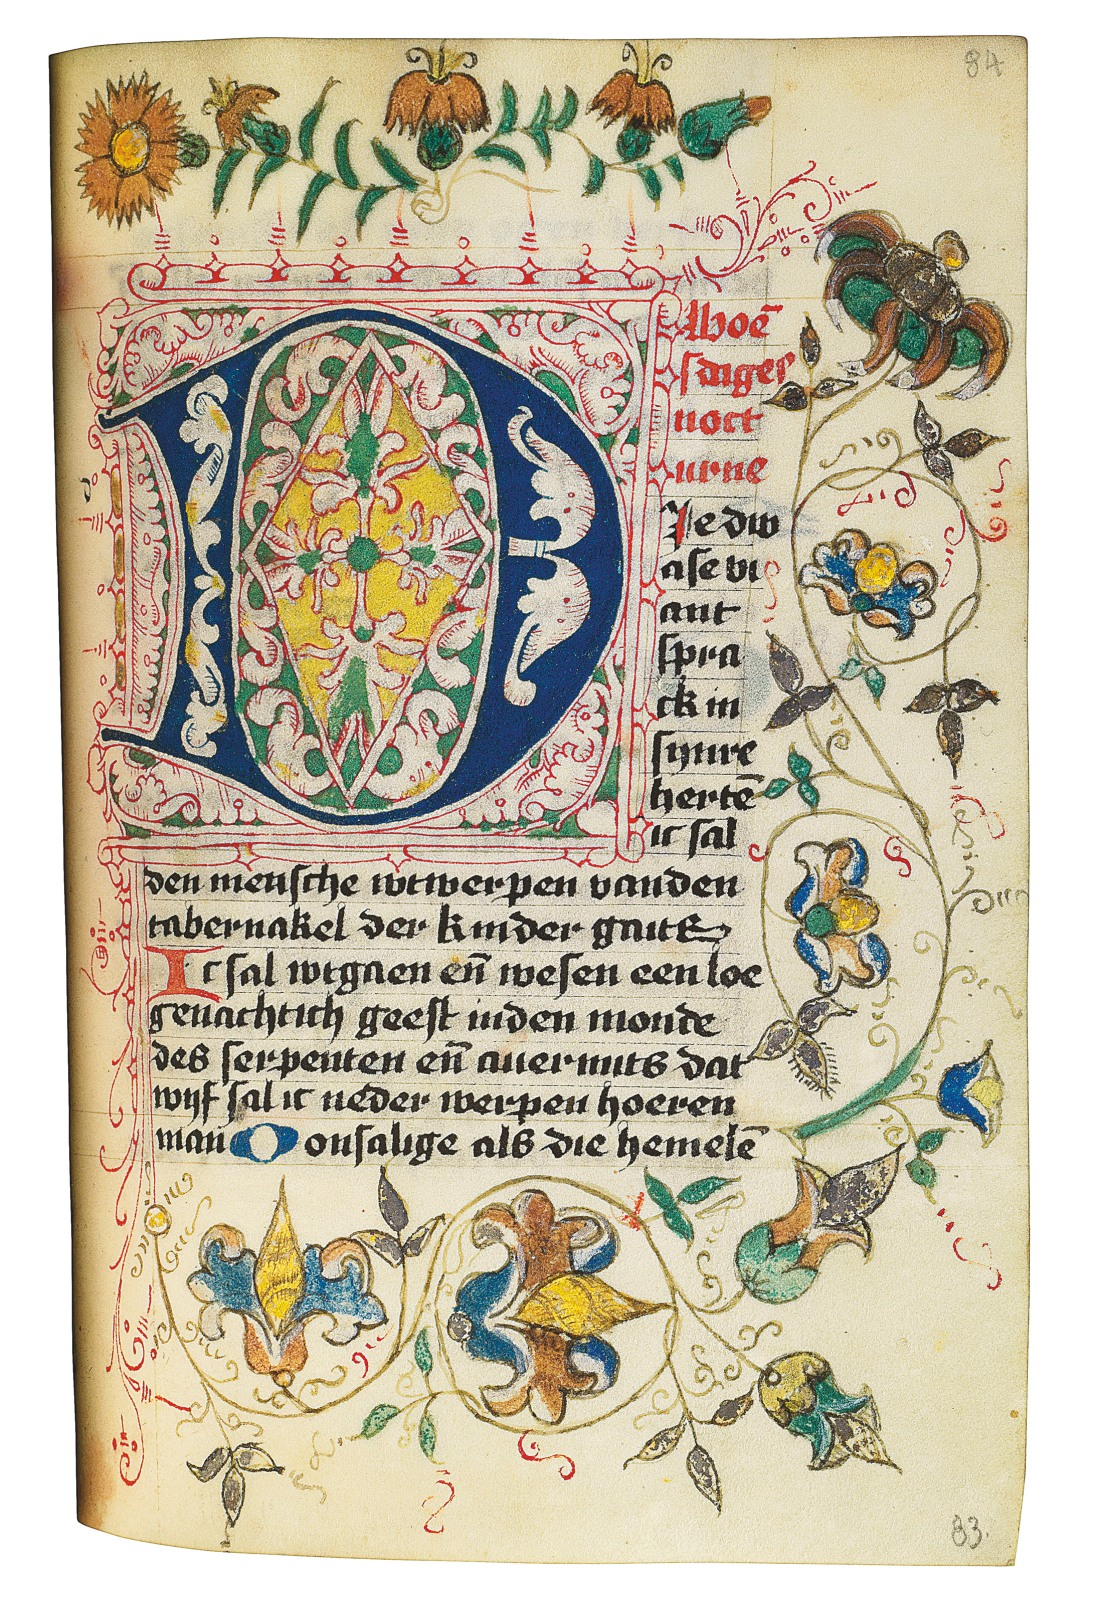 2011_CKS_07982_0019_003(book_of_hours_and_prayerbook_in_dutch_illuminated_manuscript_on_vellum)